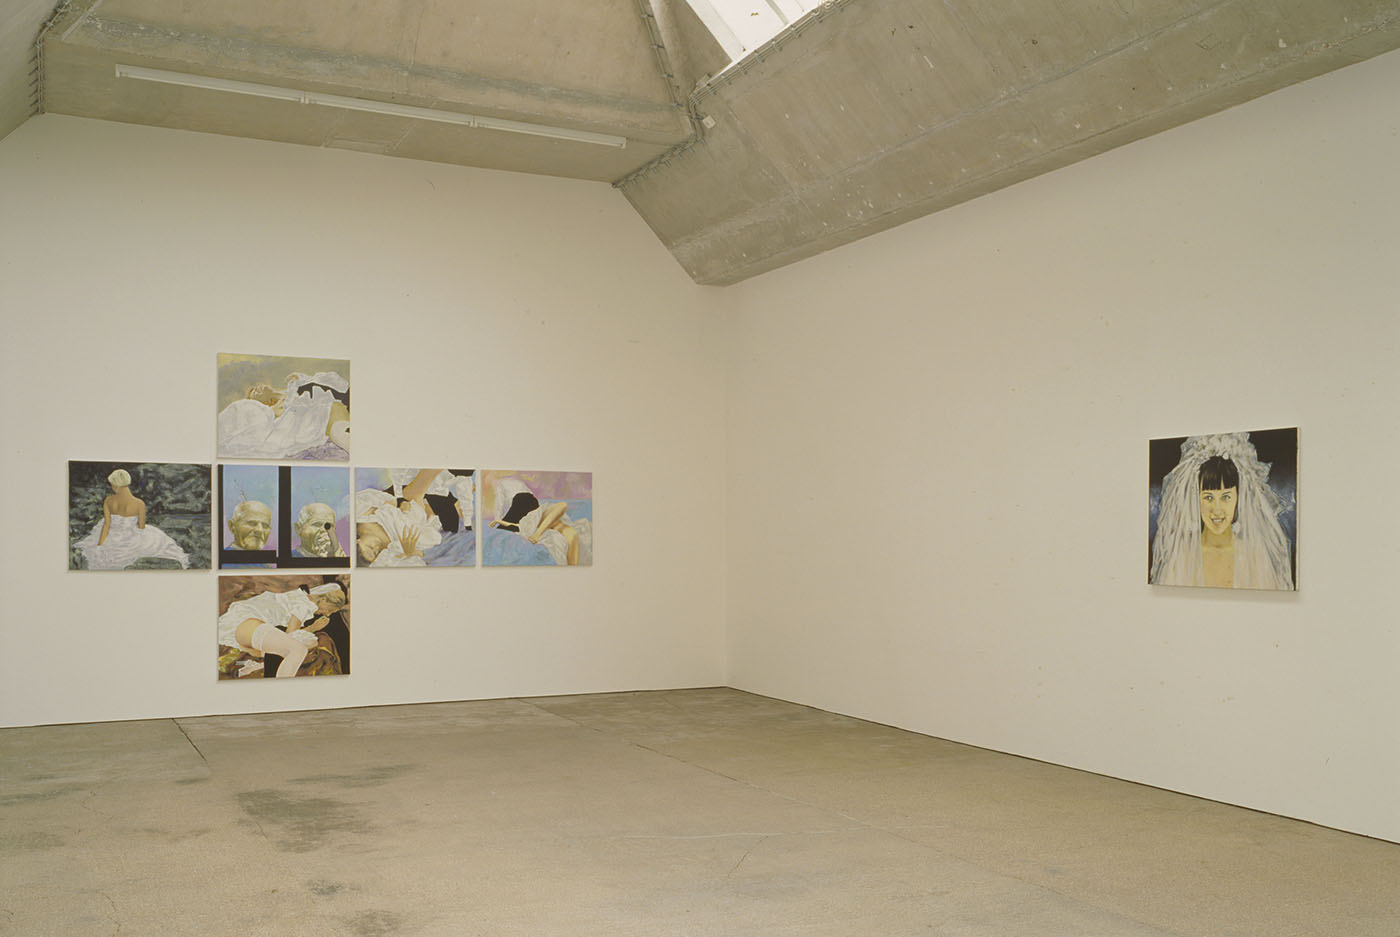 Exhibition view - History of abstraction, I Prologue, II The wedding, 2011